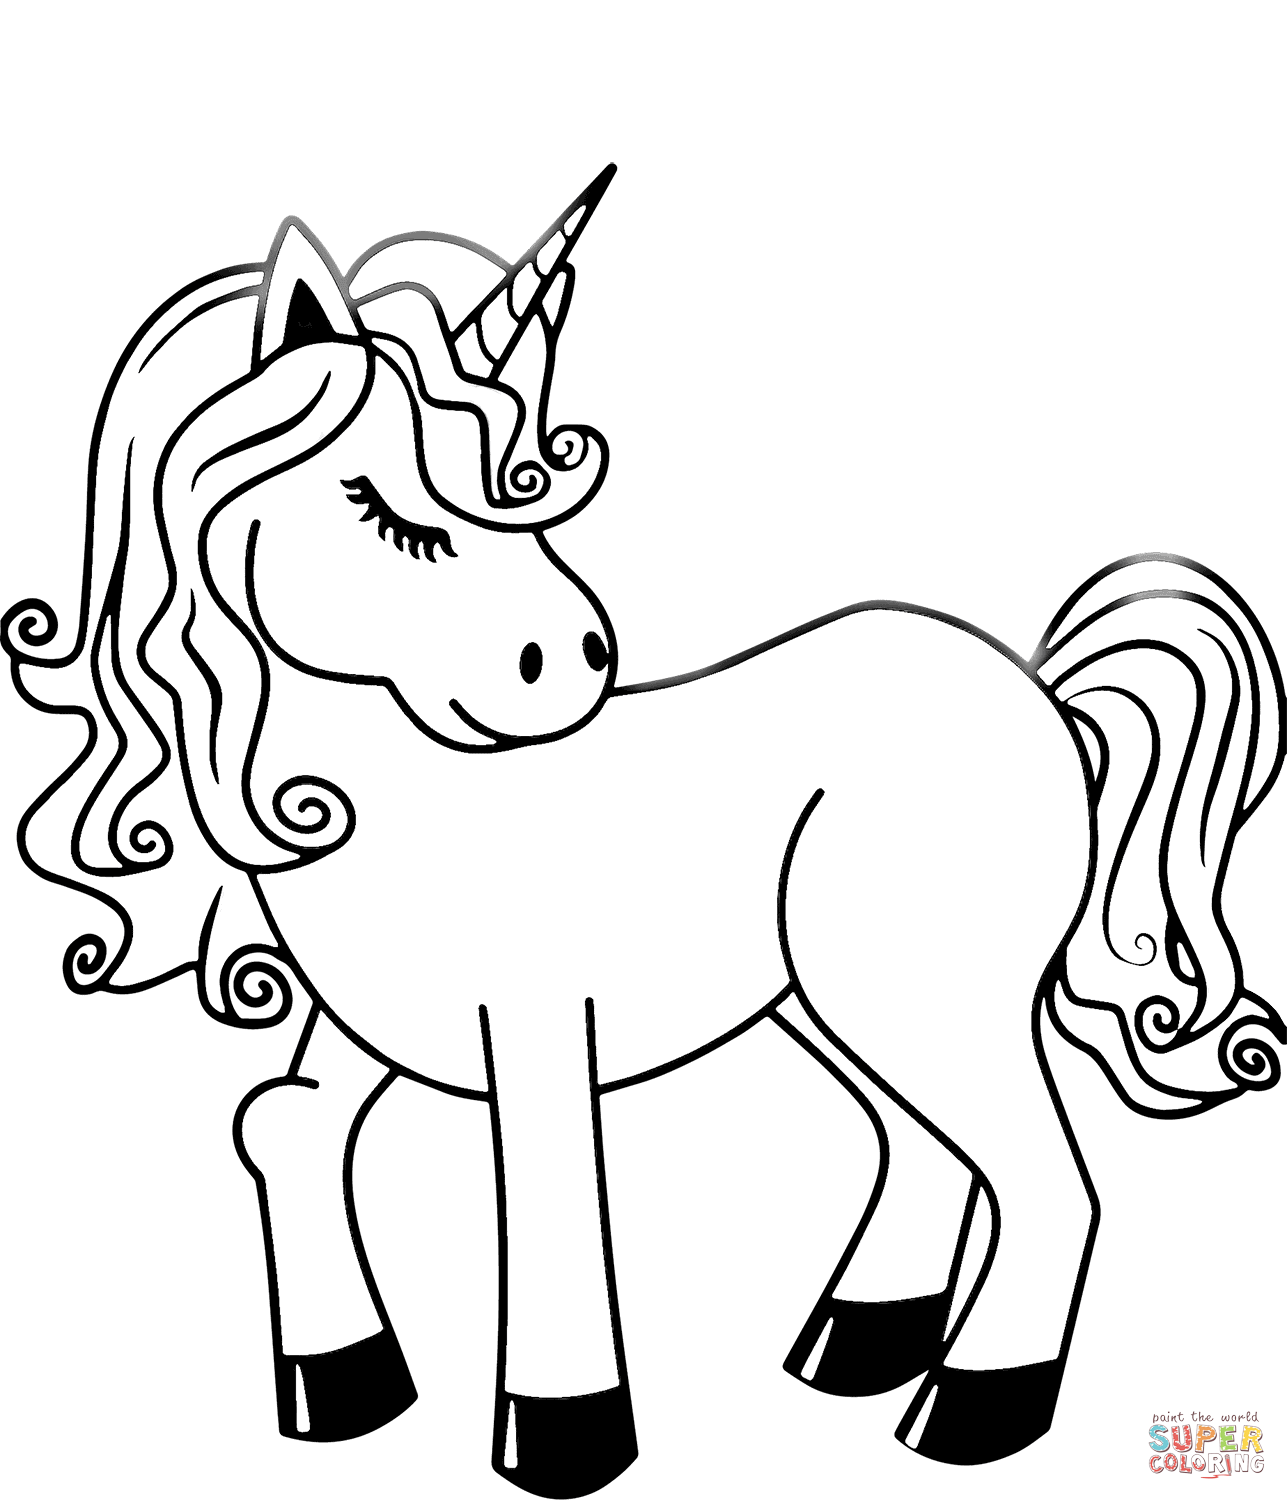 Unicorn Super Coloring Unicorn Coloring Pages Emoji Coloring Pages Cute Coloring Pages